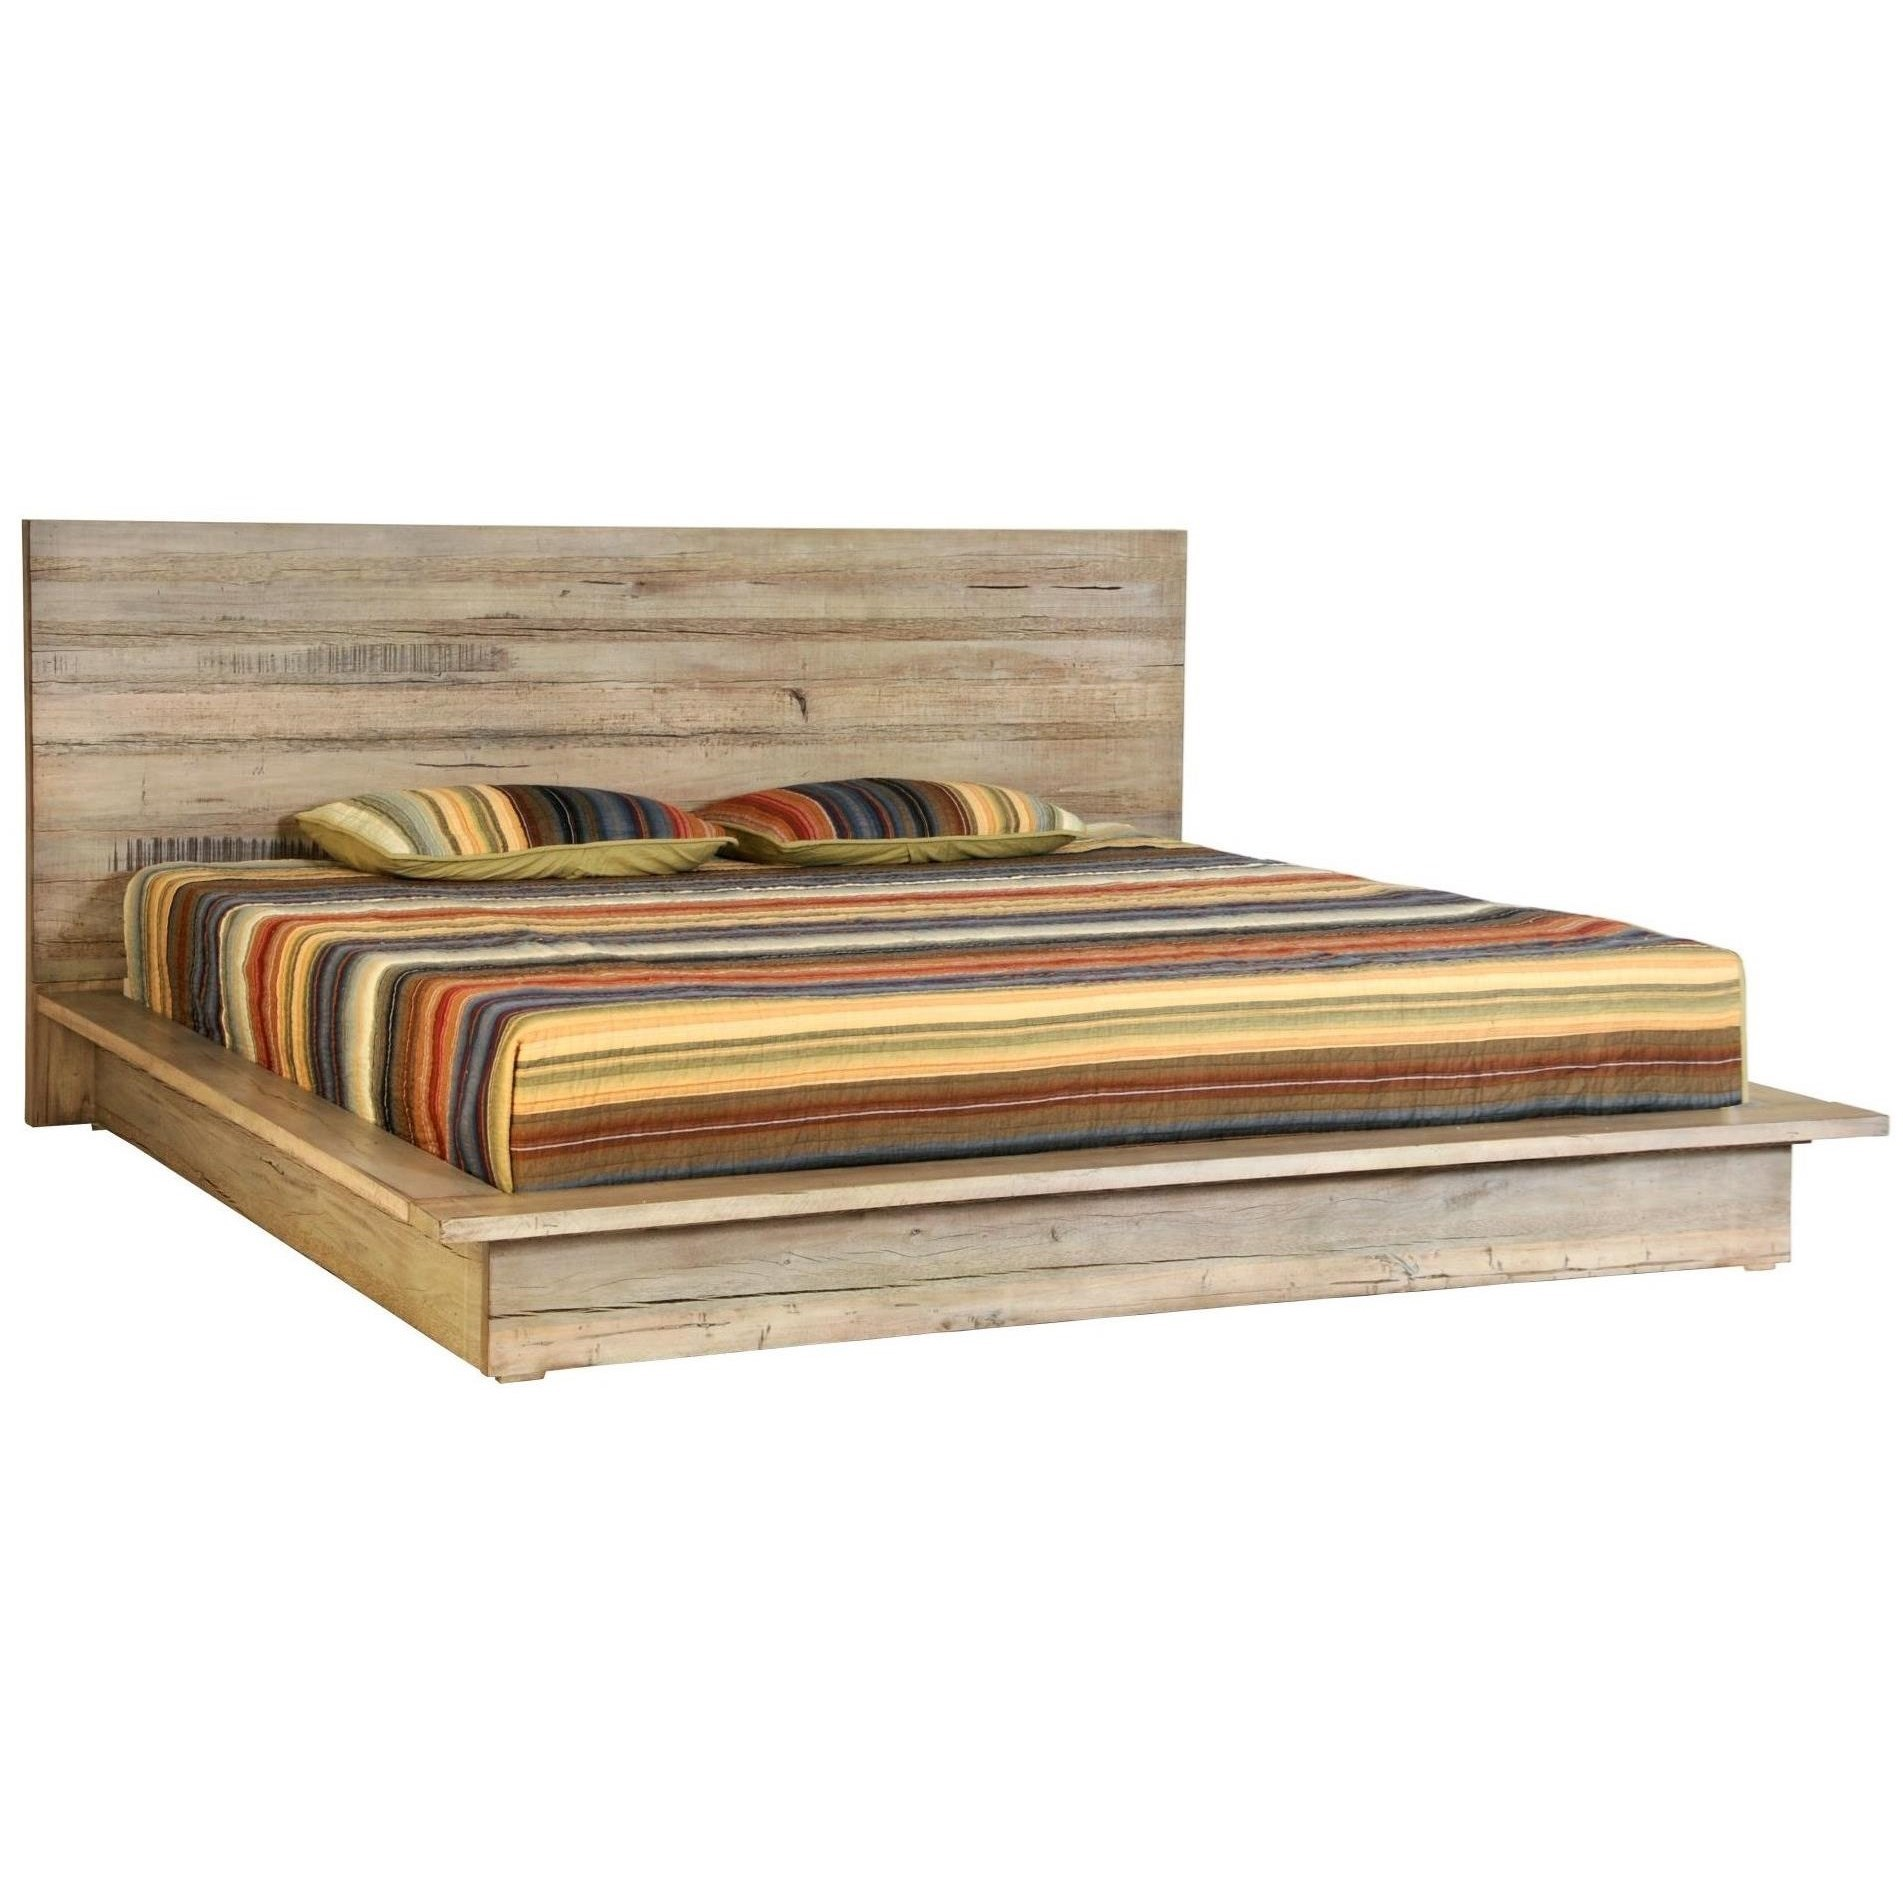 Renewal Queen Low Profile Bed by Napa Furniture Designs at Johnny Janosik